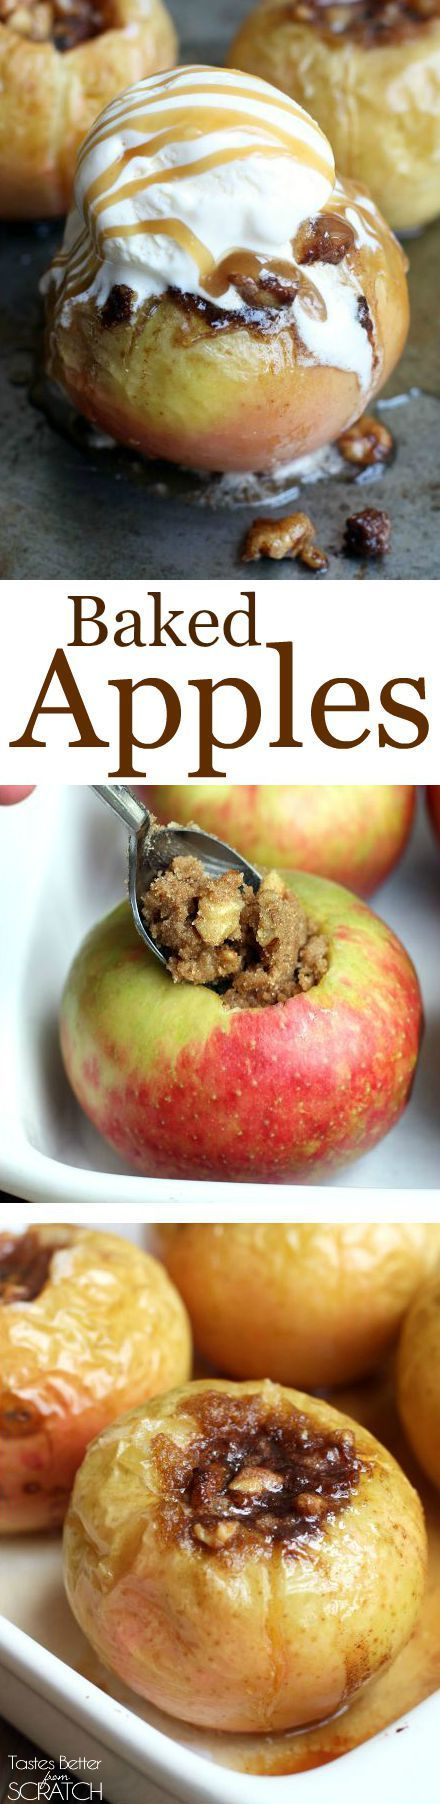 Crisp apples stuffed with a brown sugar pecan mixture and baked until tender. One of my favorite healthy treats!